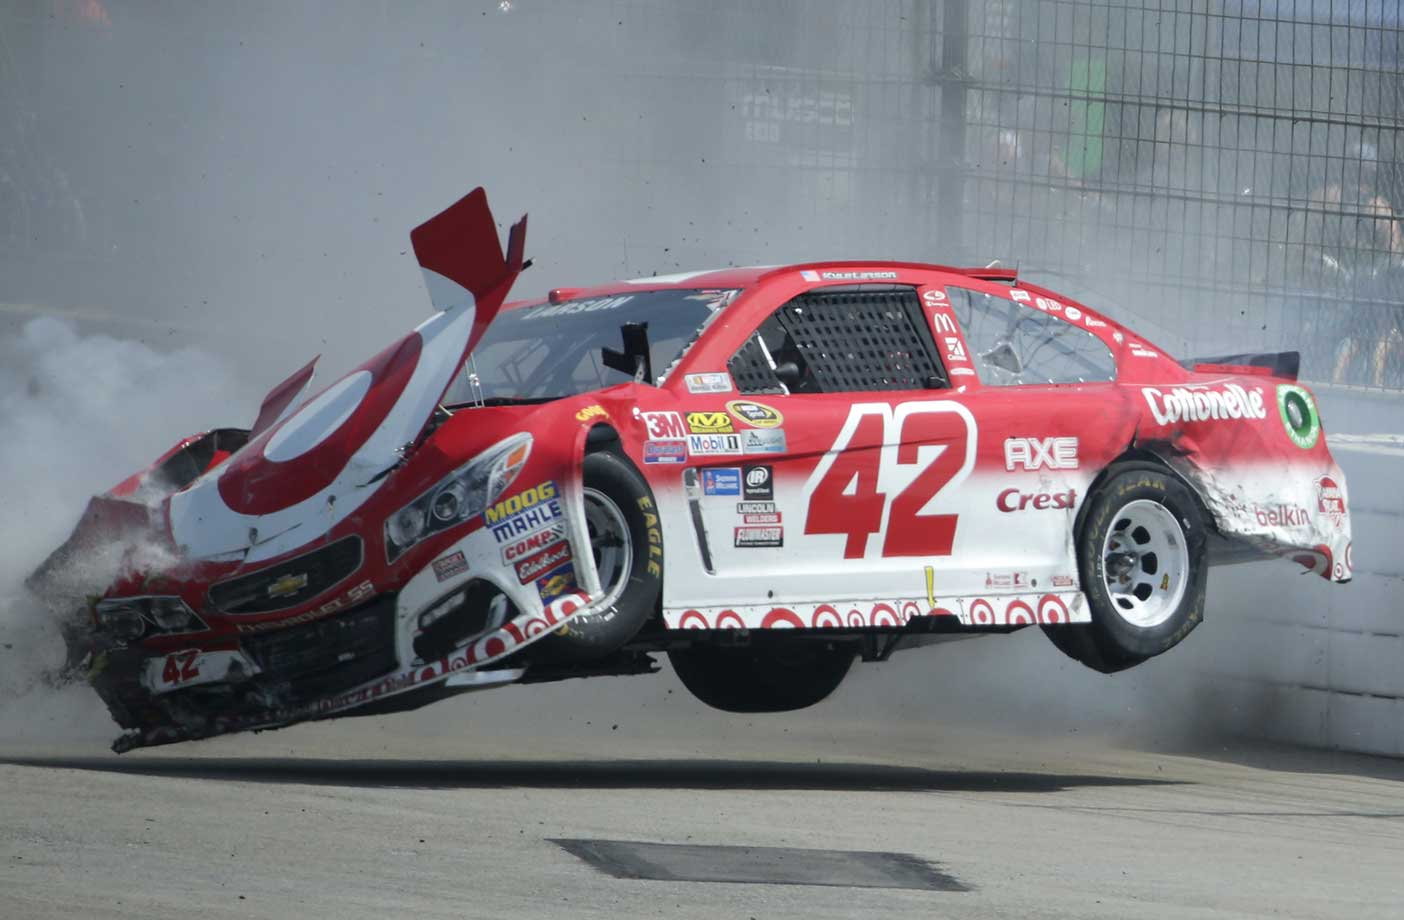 Kyle Larson after an on-track incident during the NASCAR Sprint Cup Series Auto Club 400 in Fontana, Calif.